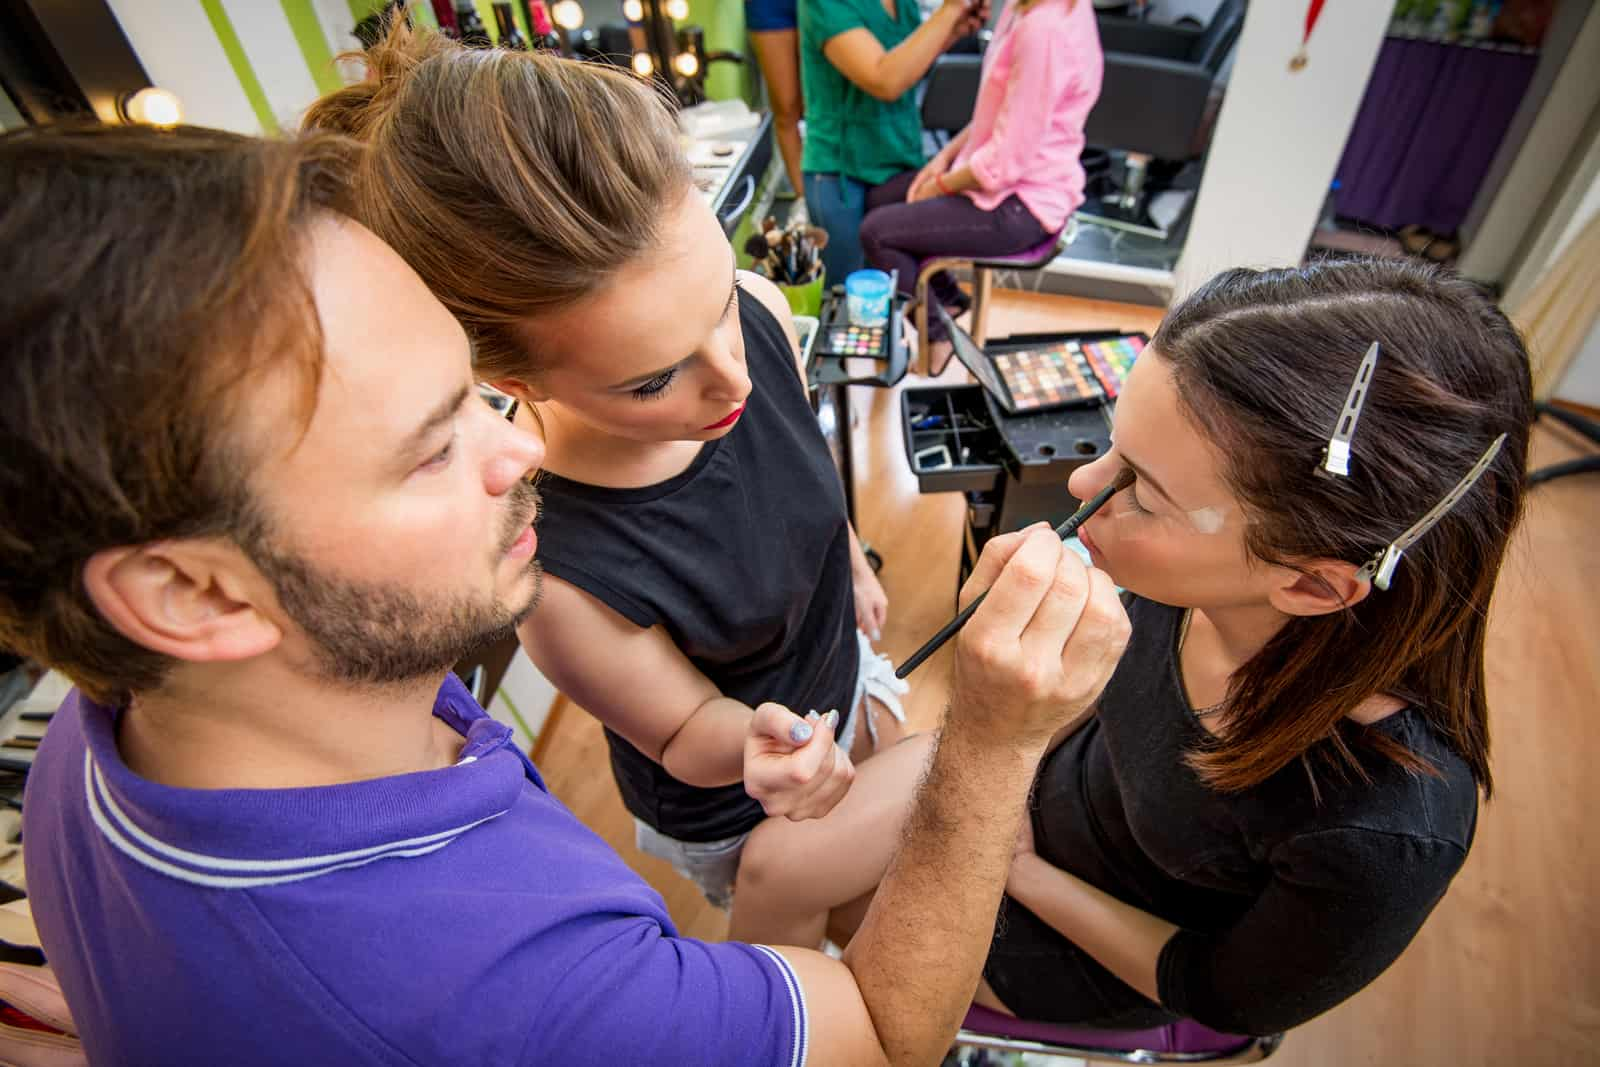 Should you go to beauty school or take a cosmetology apprenticeship?